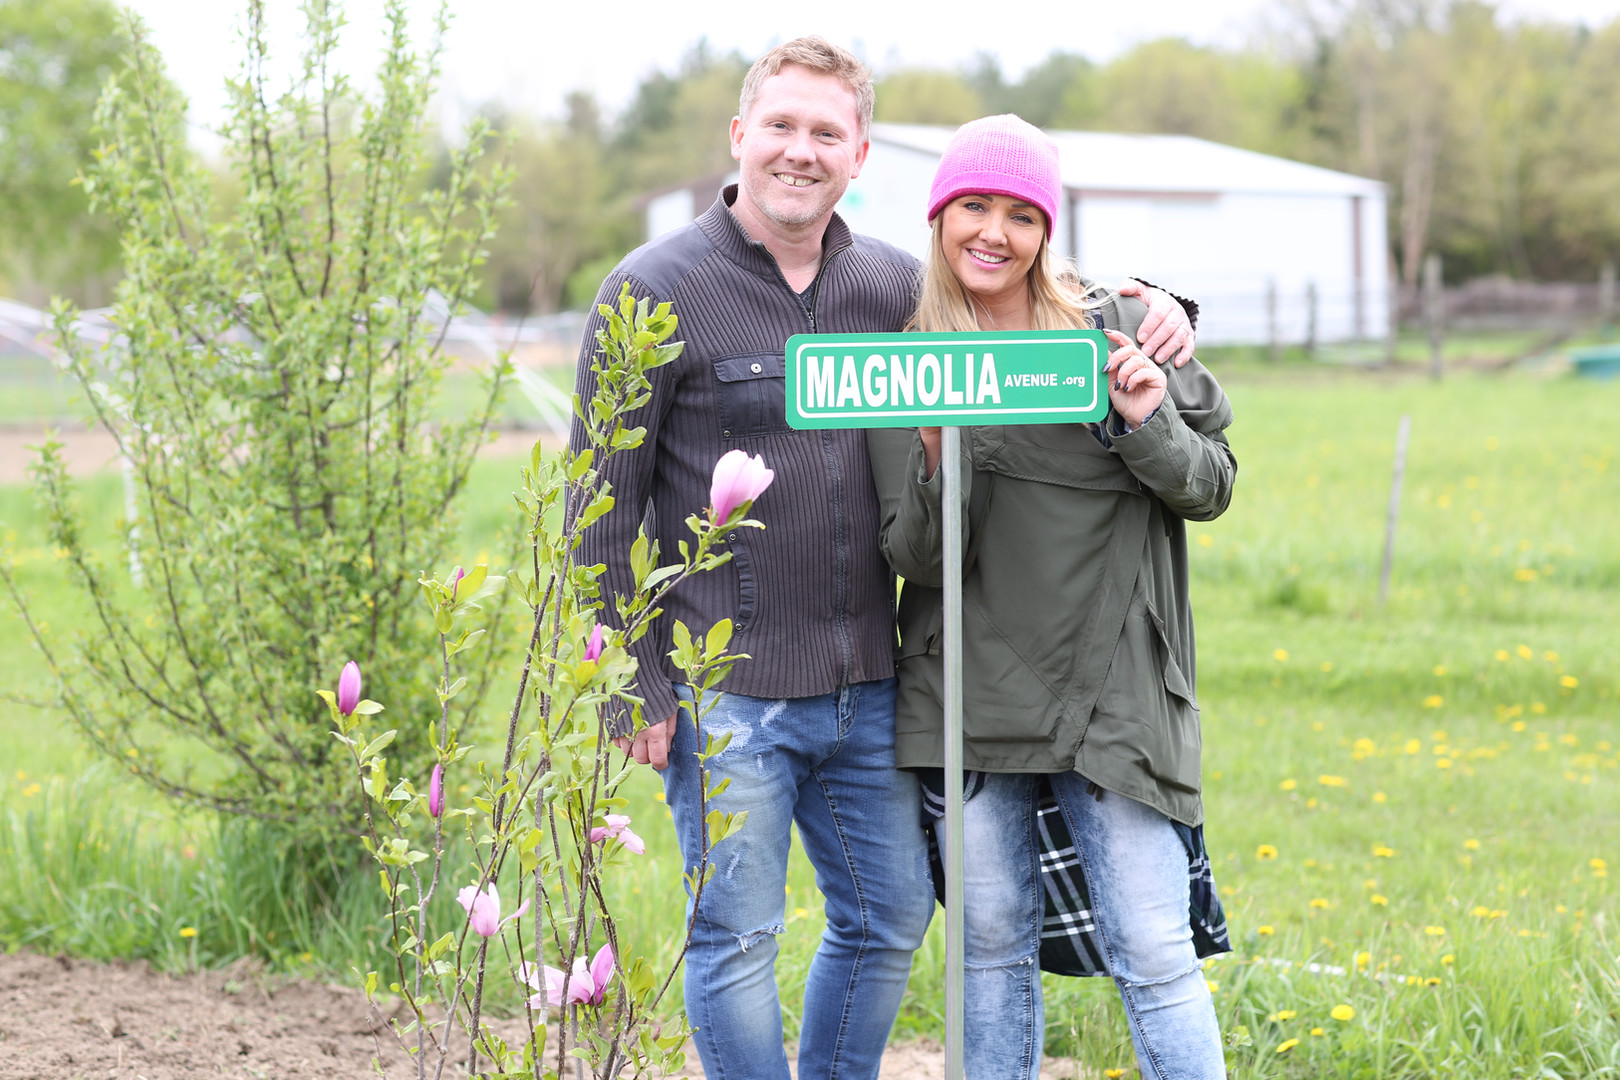 MAGNOLIA AVENUE - SUPPORT GROUP FOR WOME